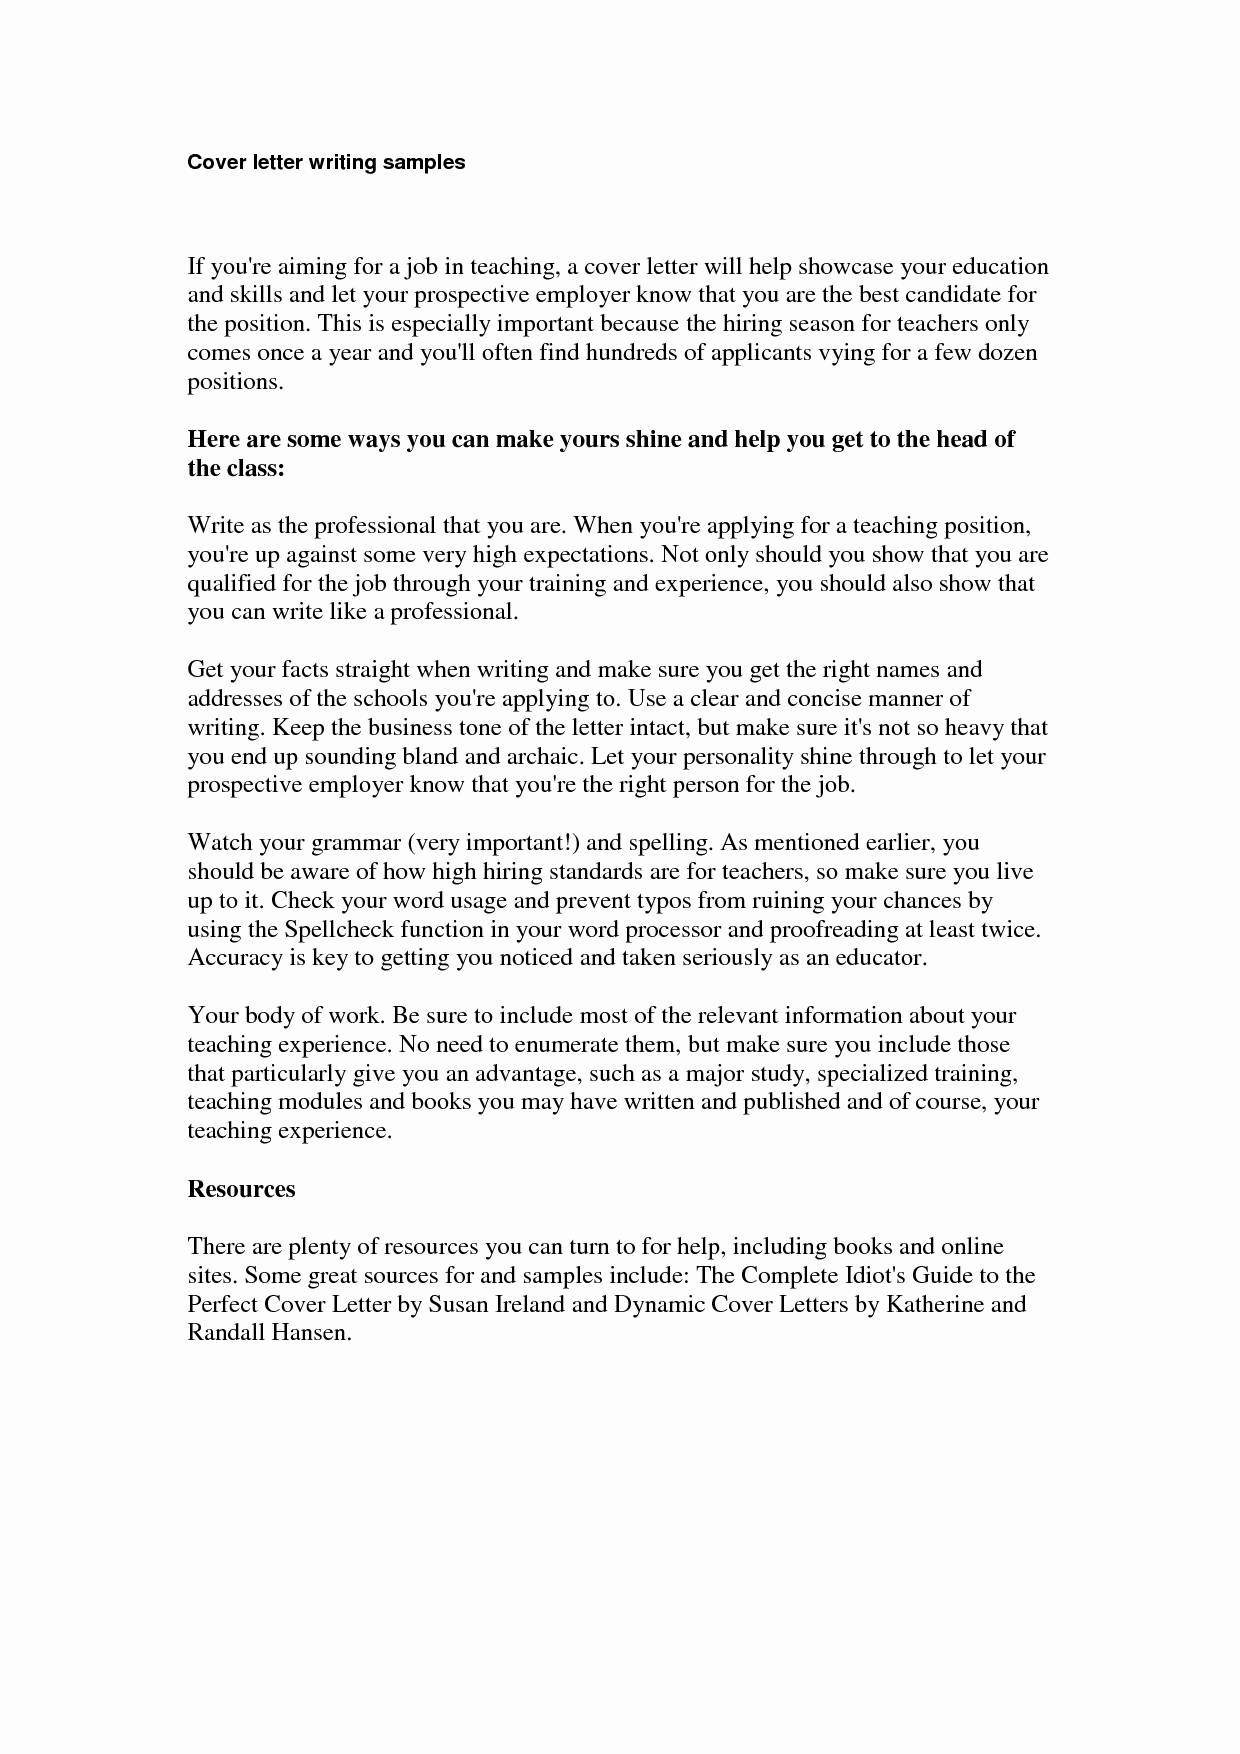 Job Application Cover Letter Template Word - Cover Letter for Potential Job Opening